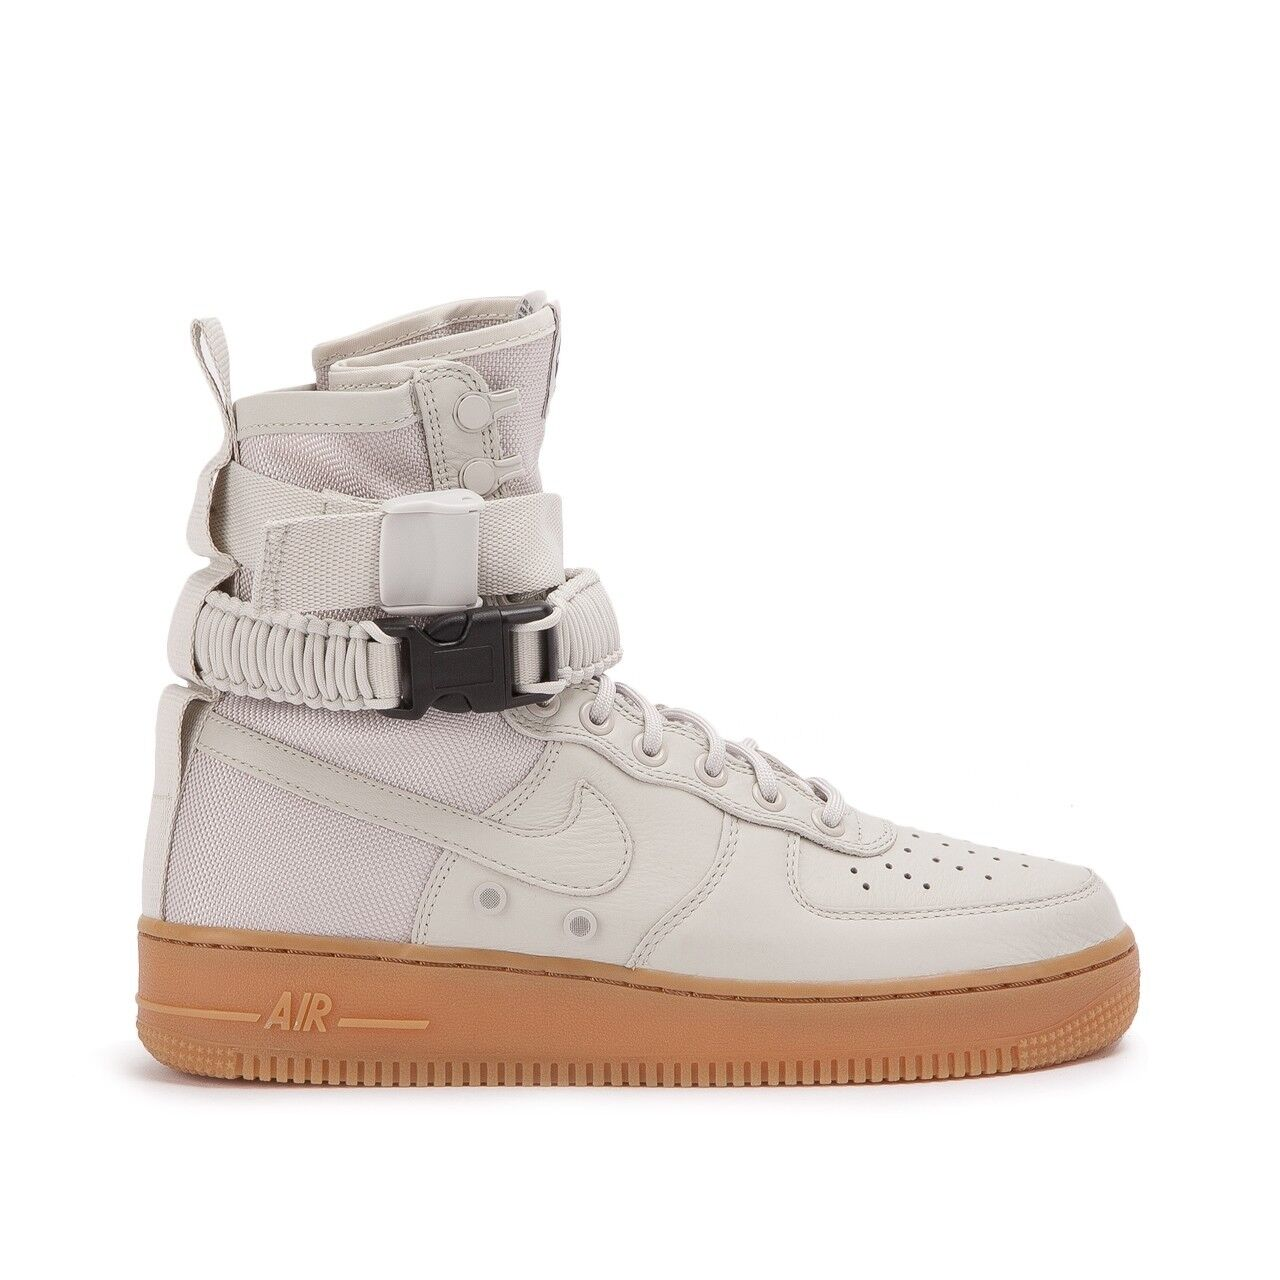 Le nike air force 1 speciale campo moda casual campo speciale luce ossa 857872 004 768f22